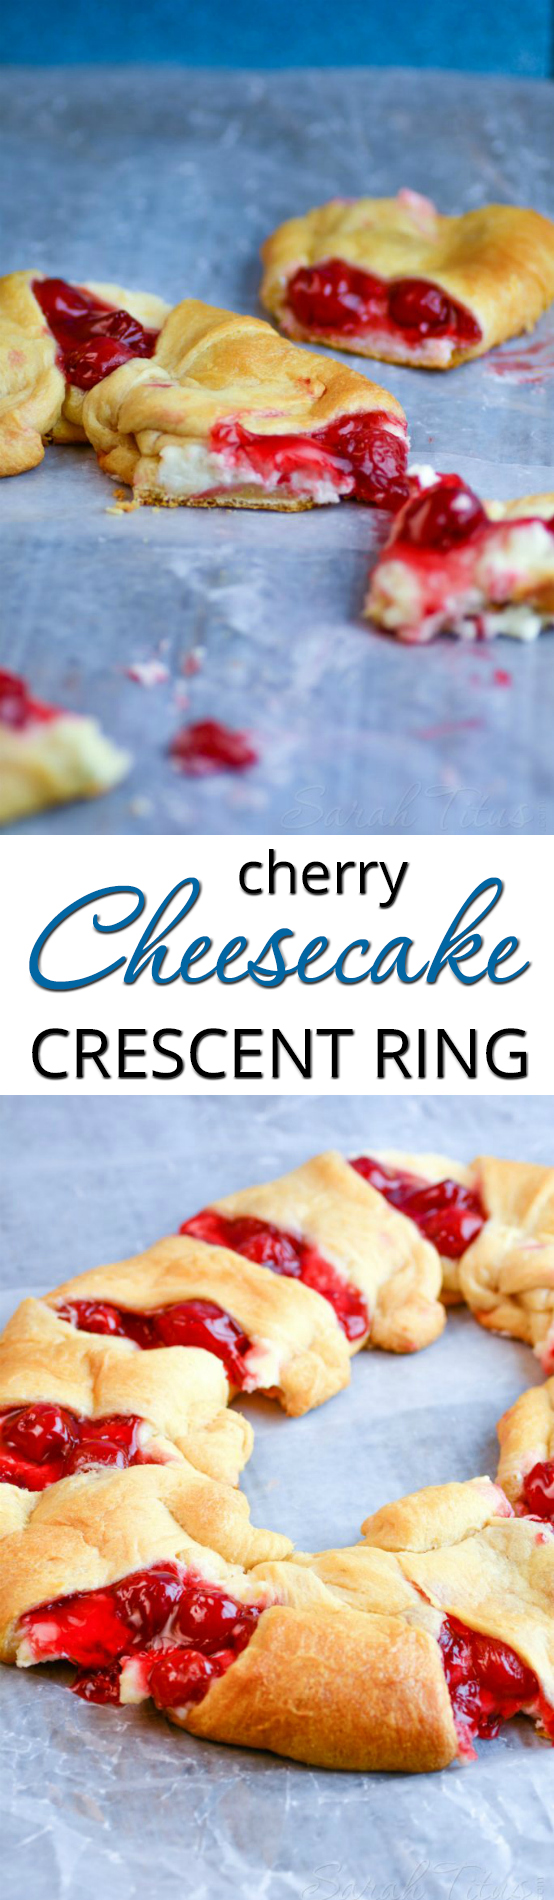 Believe it or not, this Cherry Cheesecake Crescent Ring only uses 5 ingredients and is an absolute show-stopper packed with flavor!